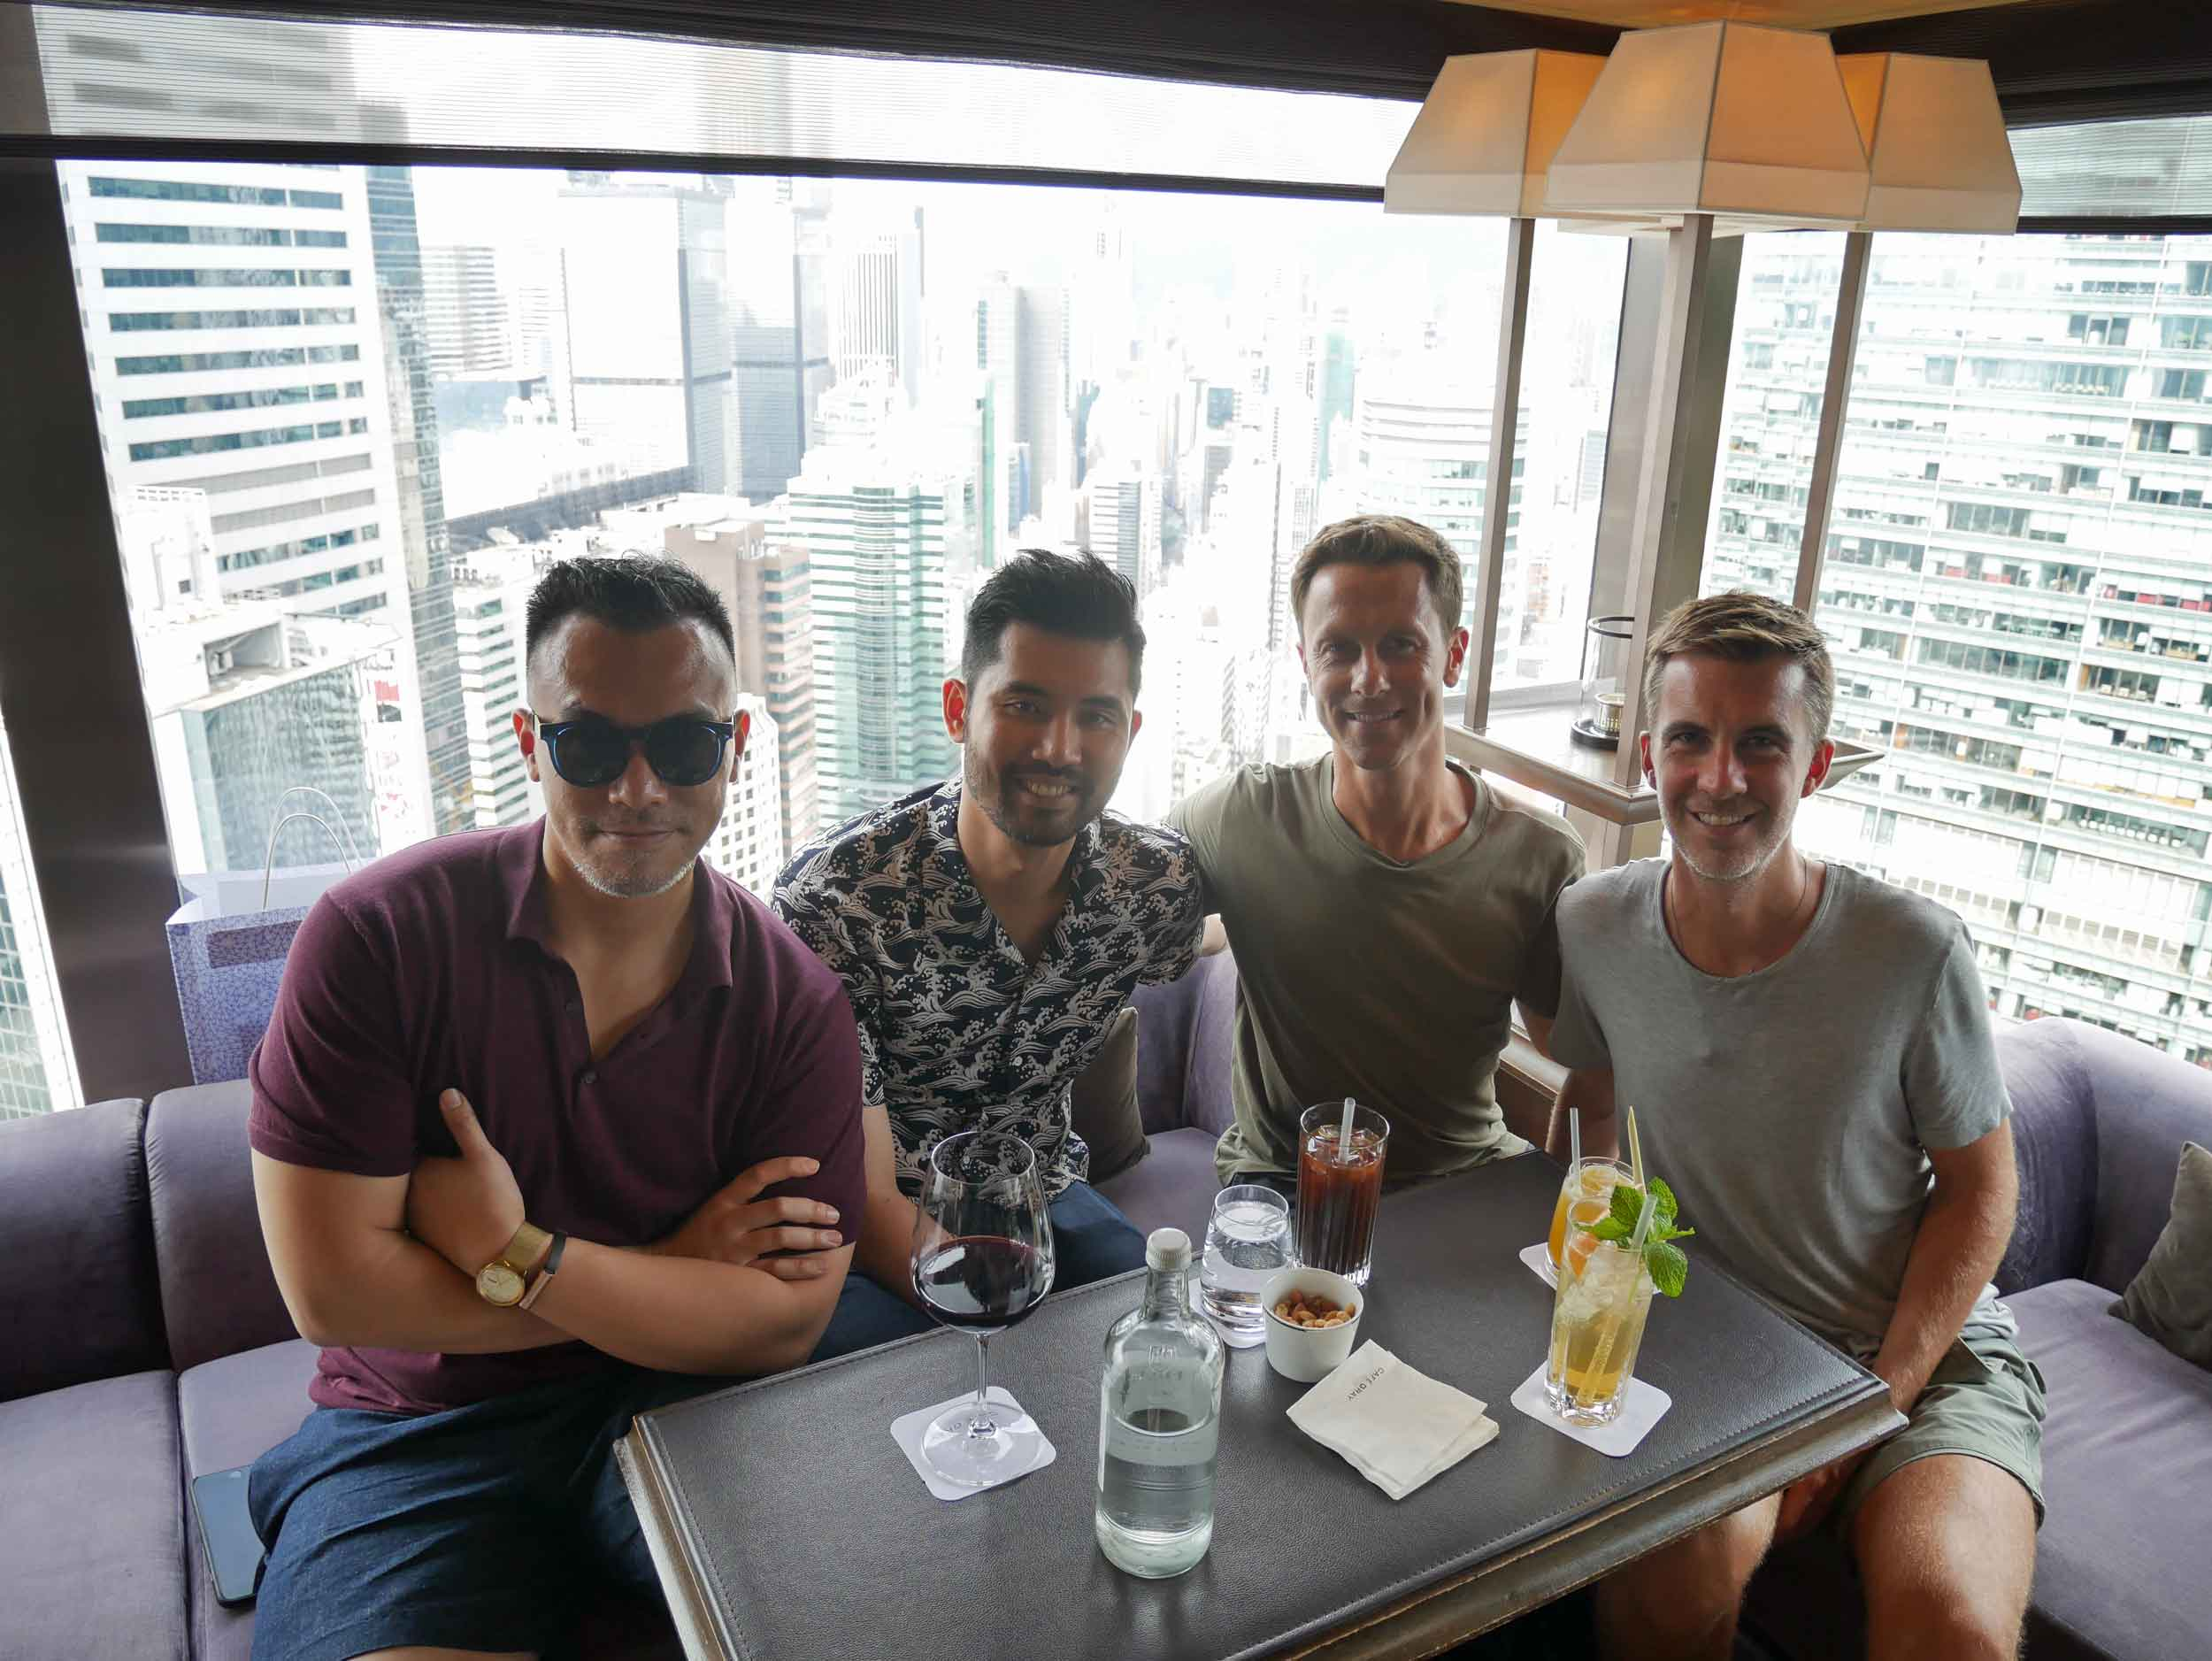 To cap off the fun day, we toasted high above the skyline at Upper House's chic bar.